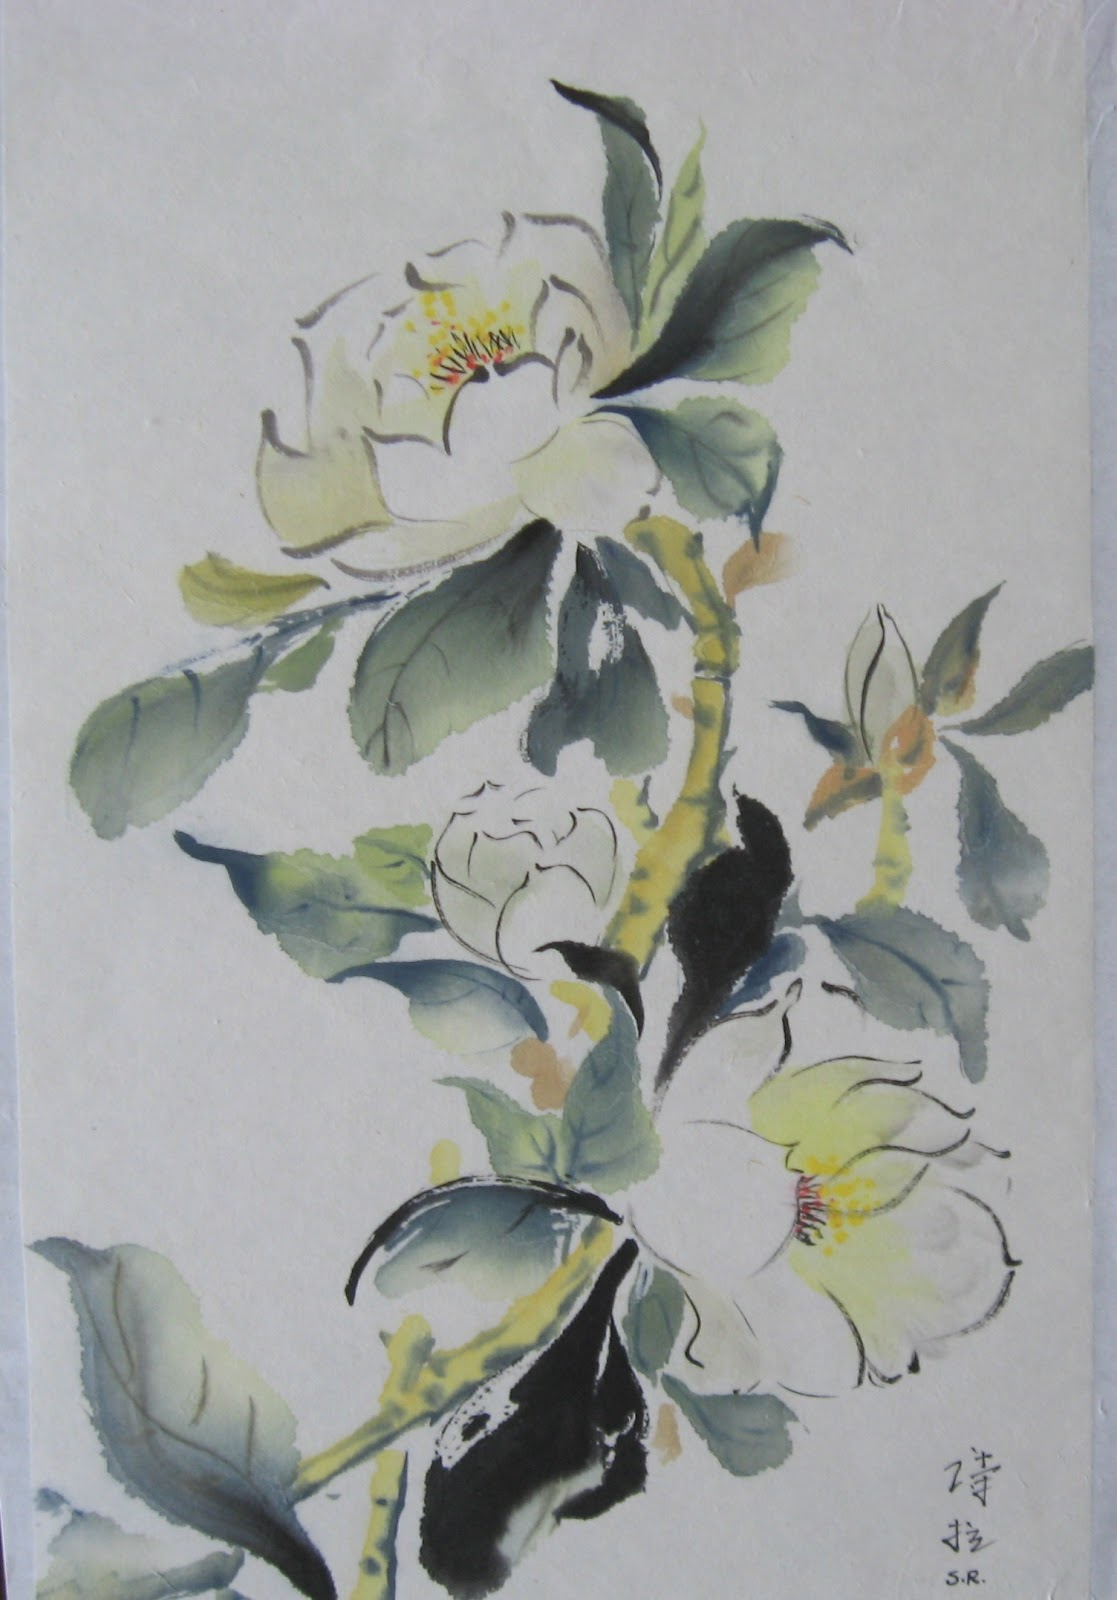 Watercolor Flowers And Paint Brushes: Shida Rad's Canvas: Flowers In Watercolor, Chinese Brush